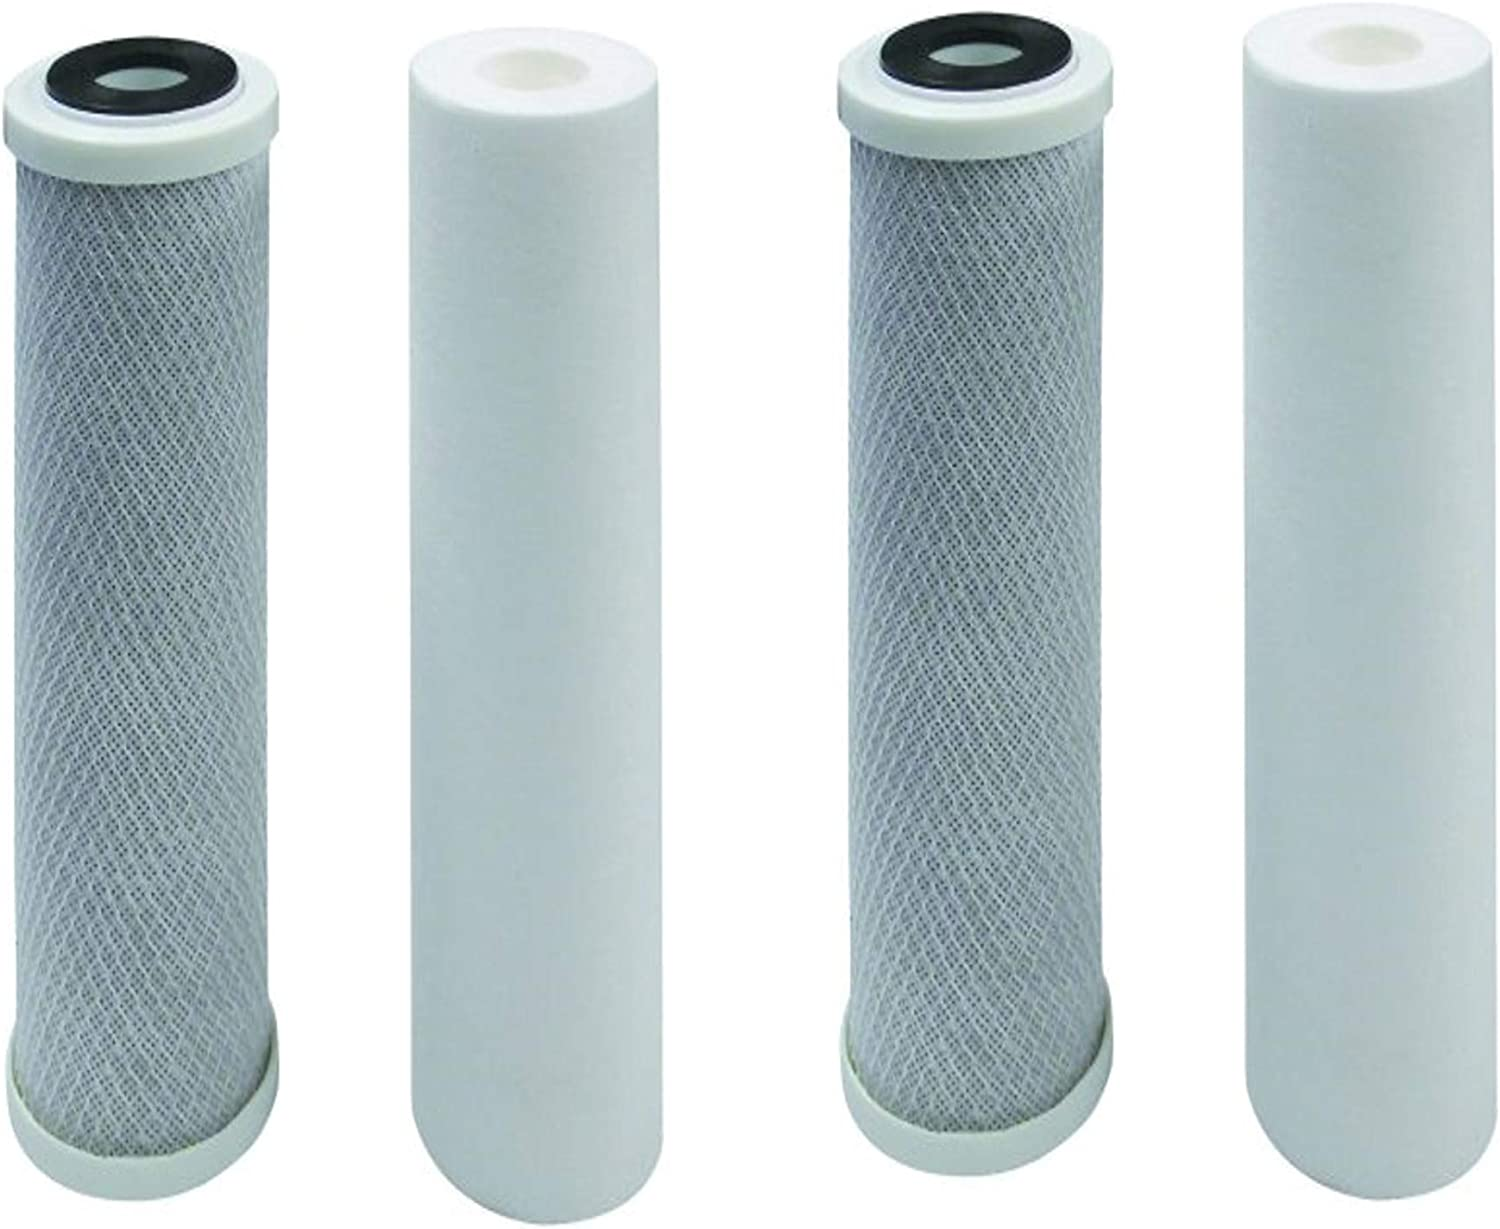 4-Pack Replacement Filter Kit for Watts WP-2 LCV RO System Includes Carbon Block Filter /& PP Sediment Filter